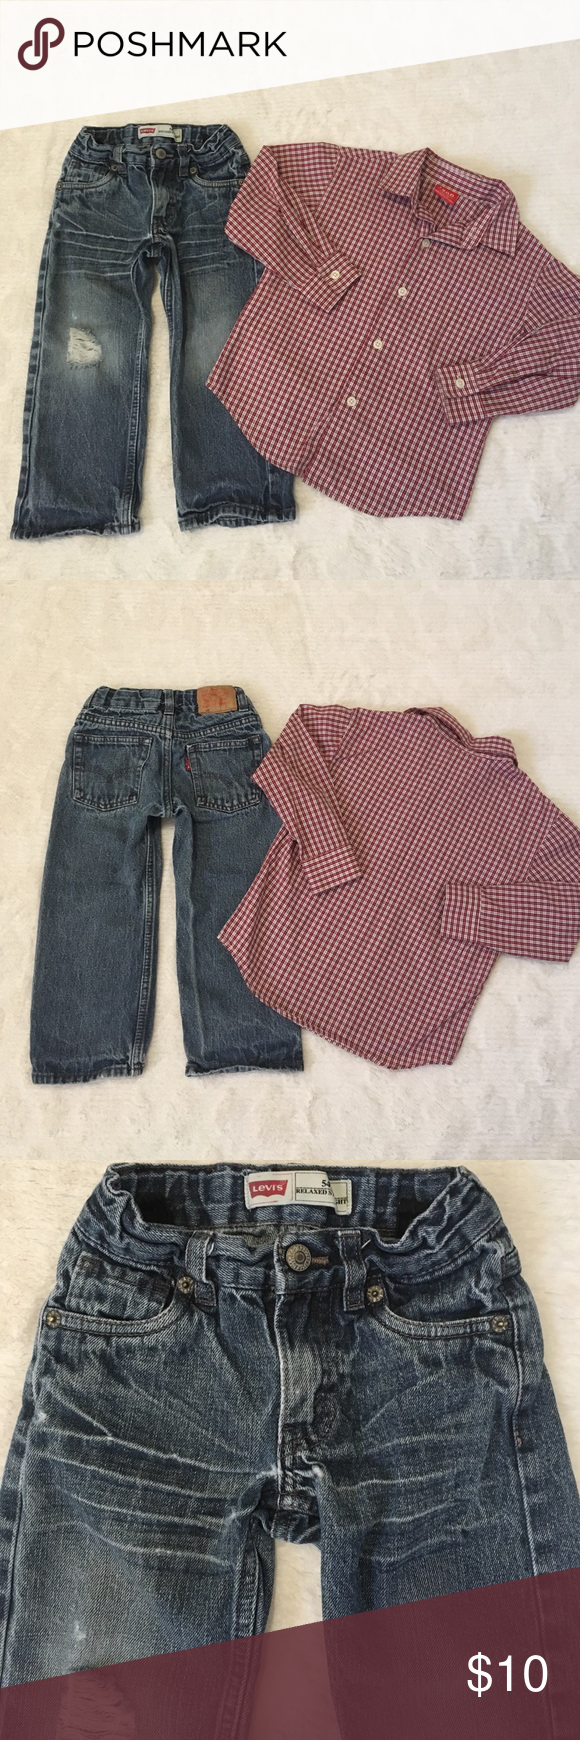 Bundle of 2 Boy's Sz 3T Blue Jean Pants & Shirt 55% Ramie 45% Cotton-Levi's 549 Relaxed Straight Distressed Blue Jean Pants-5 pockets-zip up fly-snap Button closure-Adj waist-Distressed below zipper (see pic) Super Cute #2-55% Cotton 45% Polyester-IZOD Sz 3T/3 Red Plaid Button Down Long Sleeve Shirt Super Cute Levi's/ IZOD Other